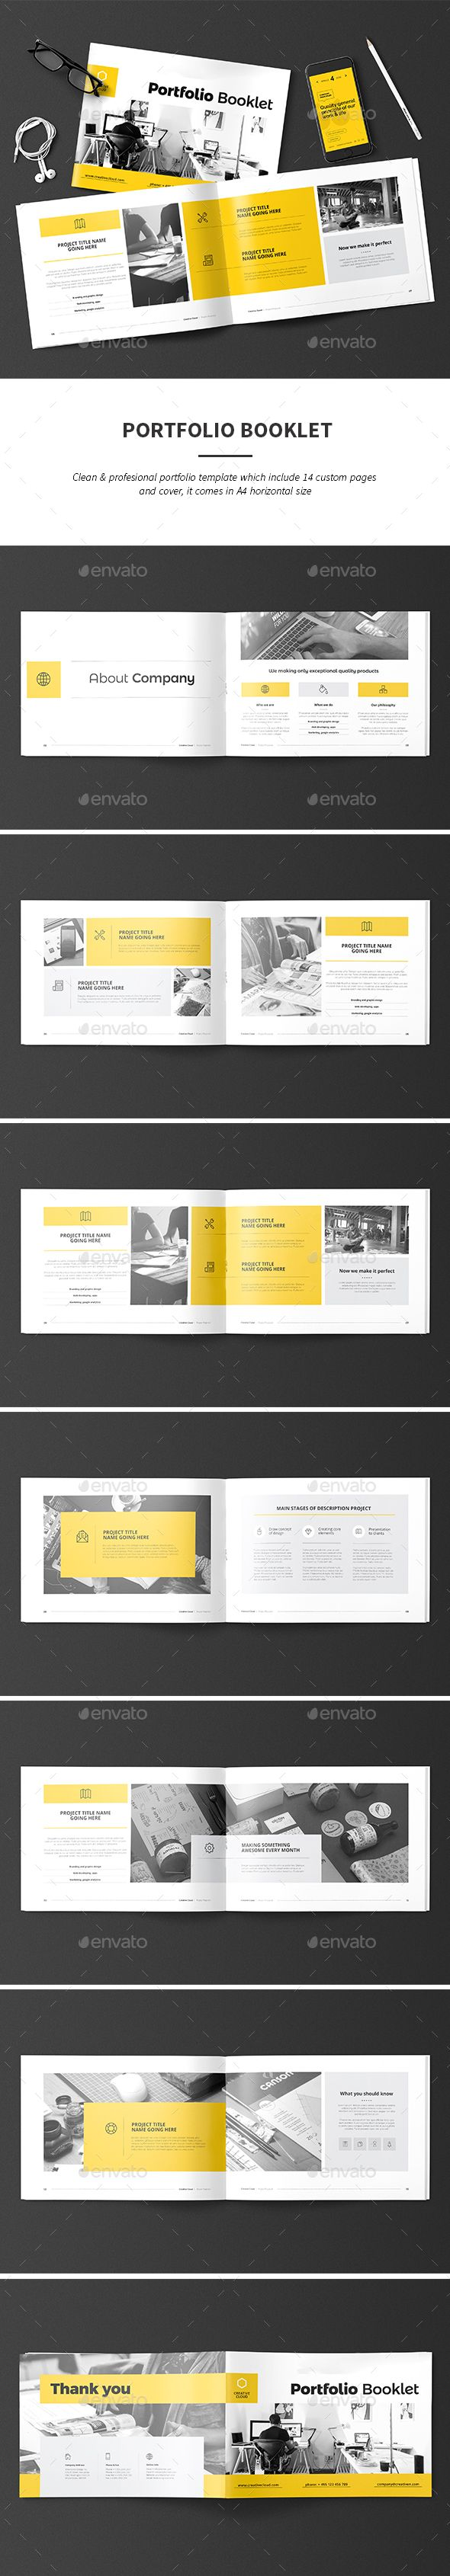 Portfolio - Portfolio Brochures | Download: https://graphicriver.net/item/portfolio/18730044?ref=sinzo